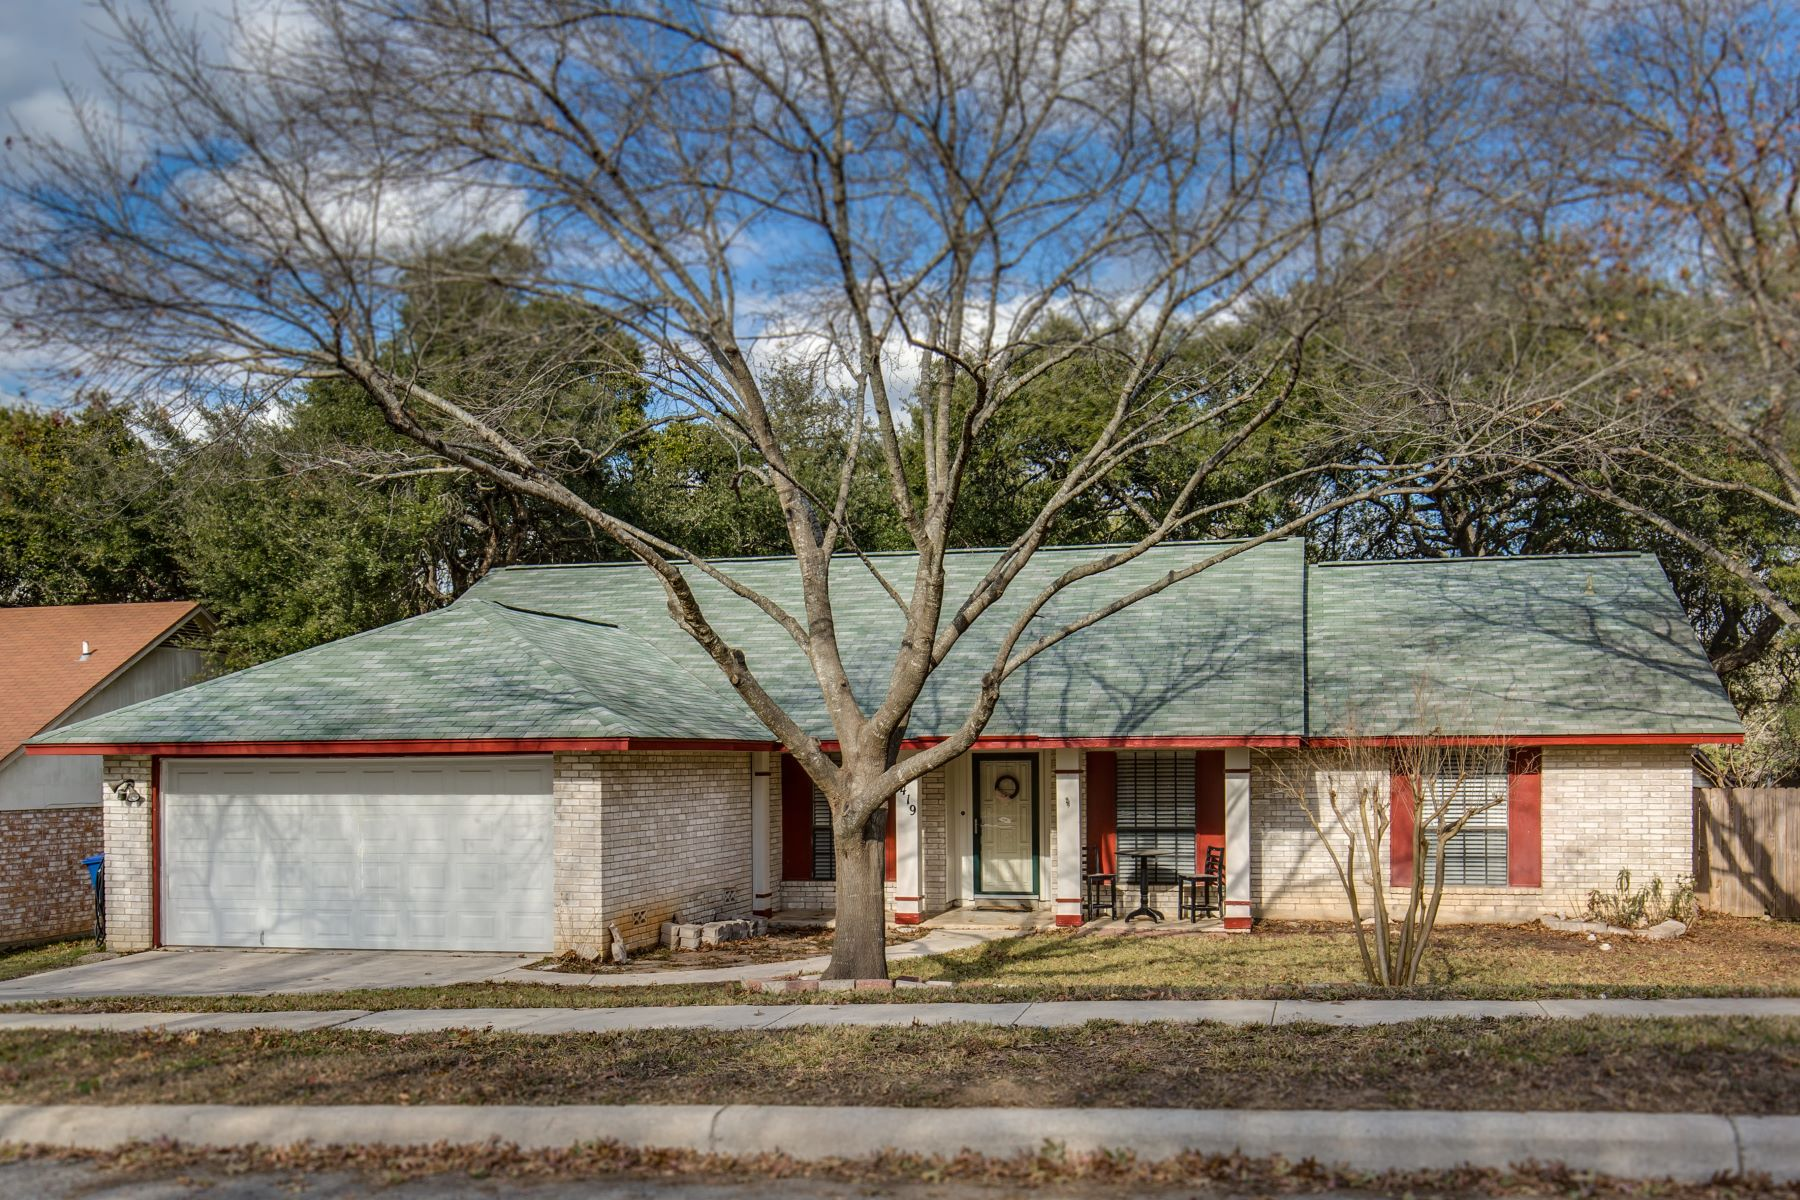 Single Family Home for Sale at Spacious Single Story Home in Fox Run 6419 Indian Path Street San Antonio, Texas 78247 United States